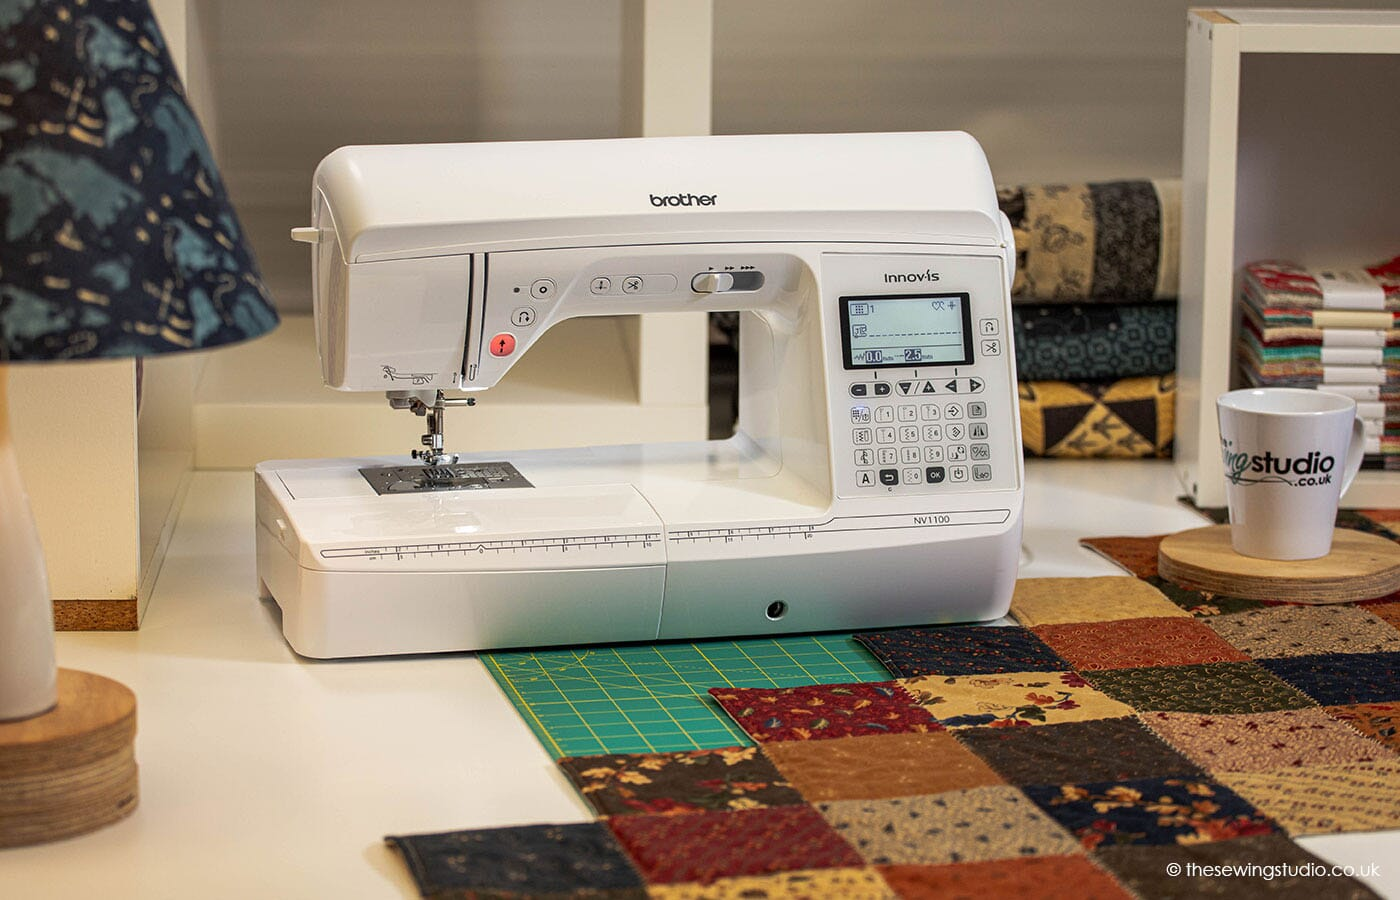 Brother Innov-is NV1100 Sewing Machine in a Sewing Room